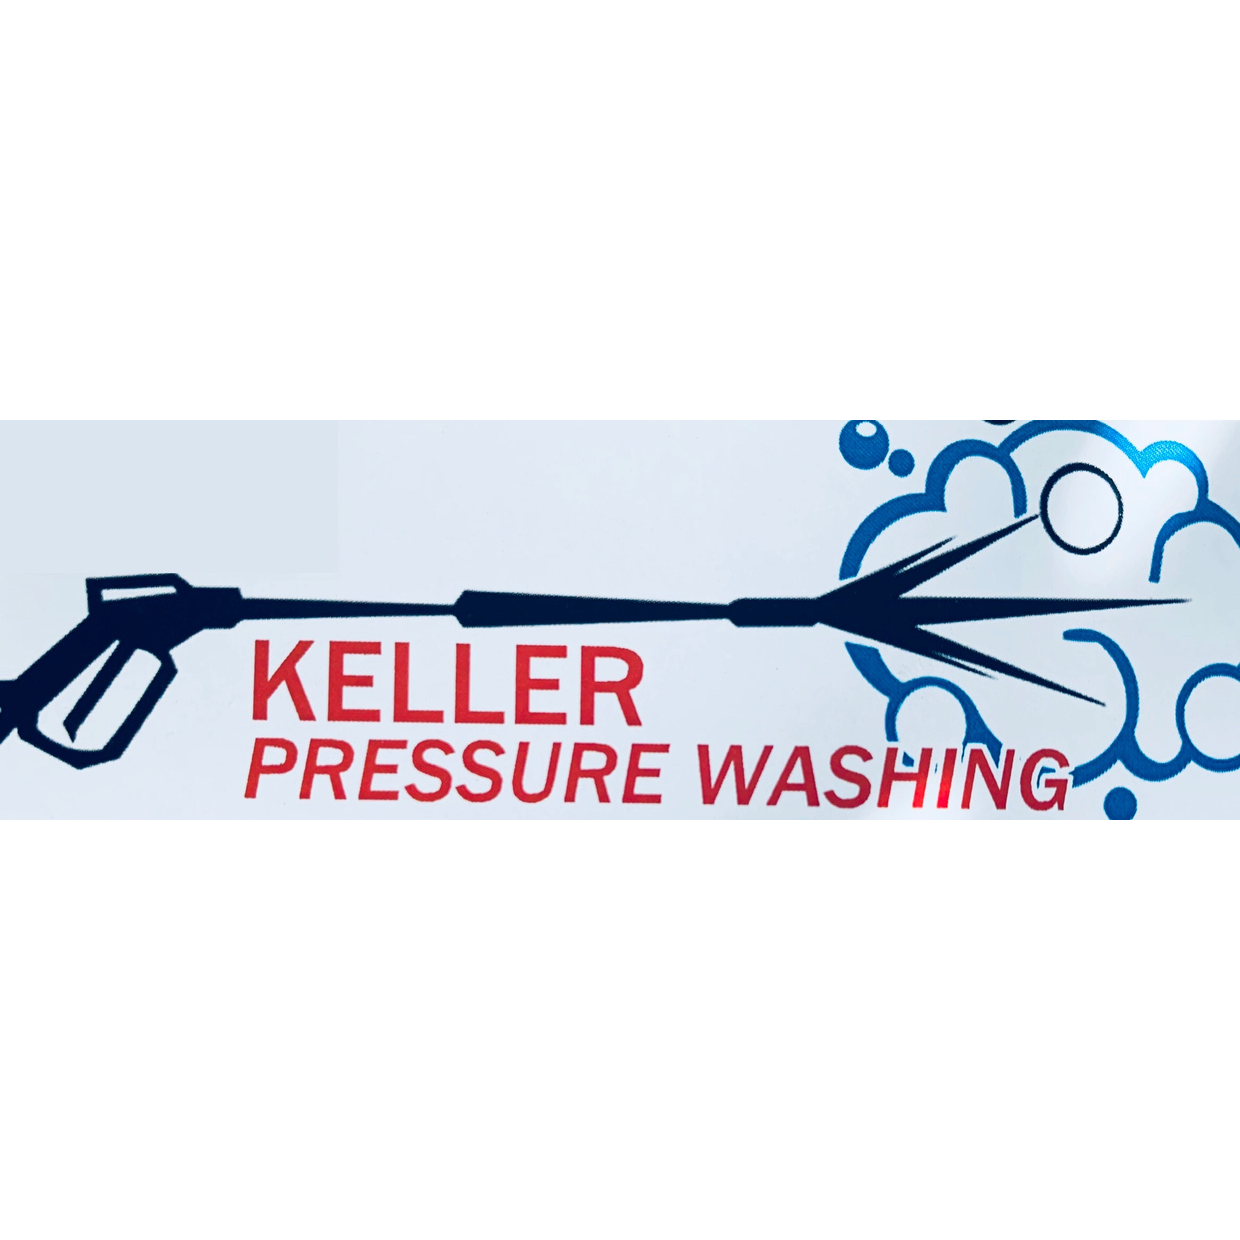 Keller Pressure Washing - Parma Heights, OH 44130 - (216)970-9917 | ShowMeLocal.com